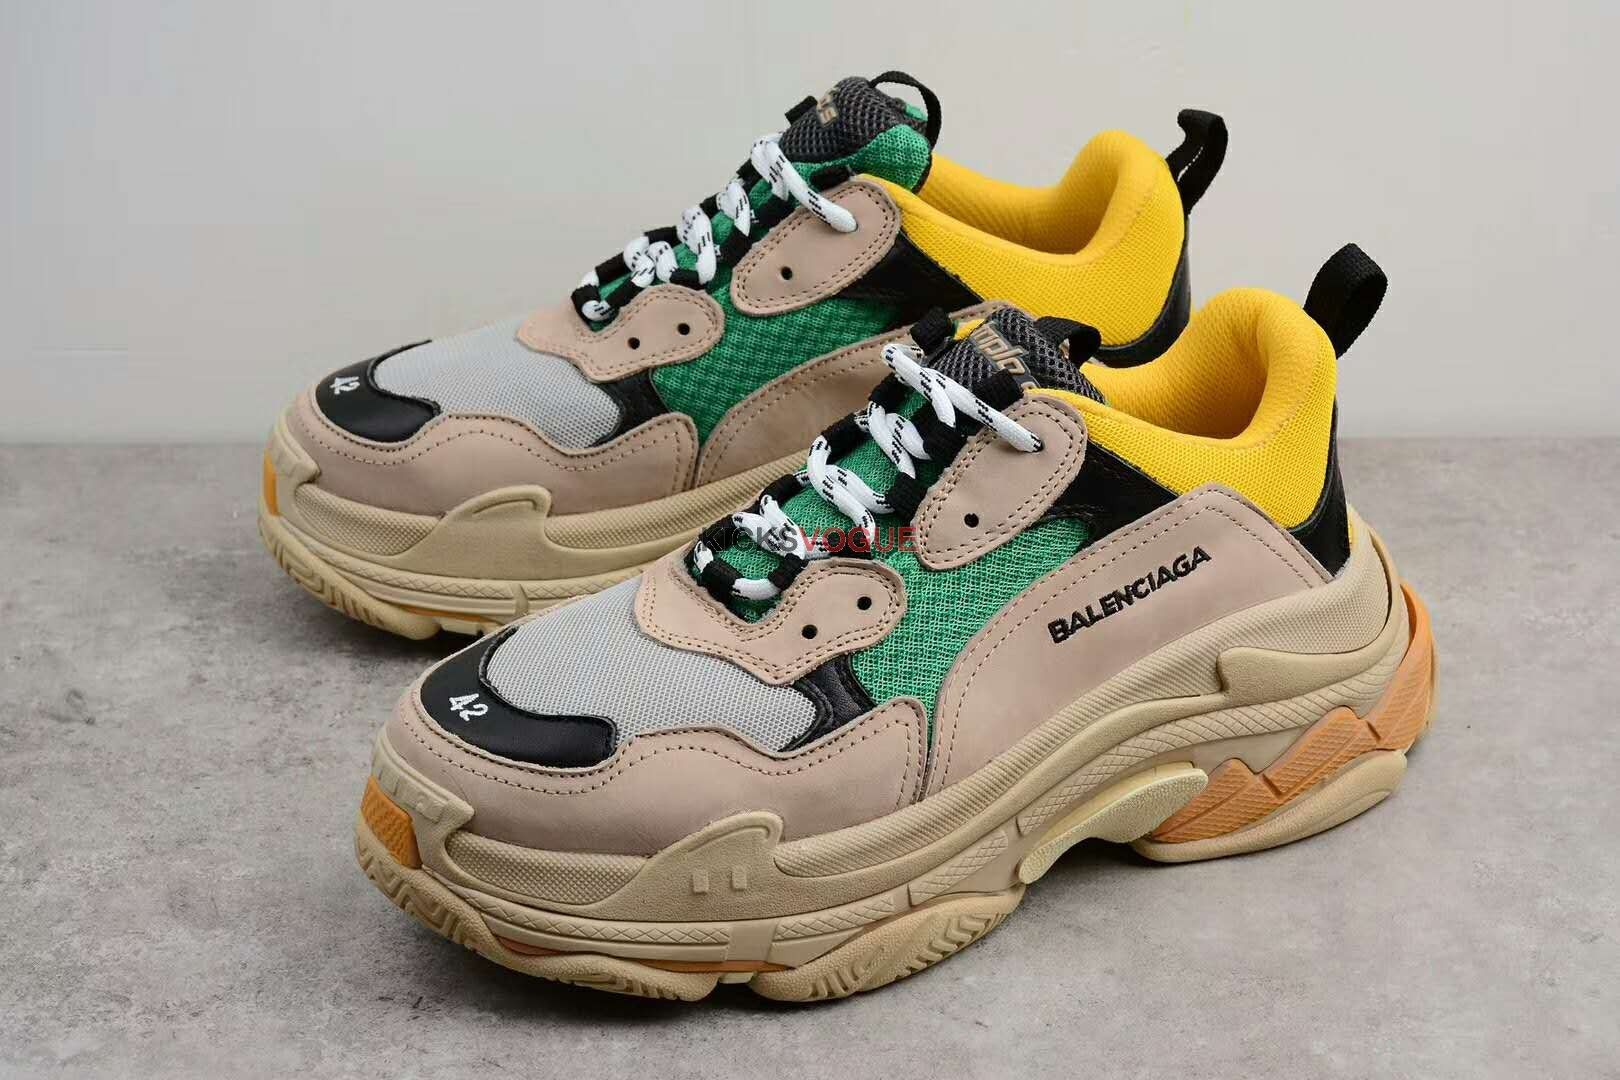 Balenciaga Triple S TRAINER DAD SHOES Yellow Green